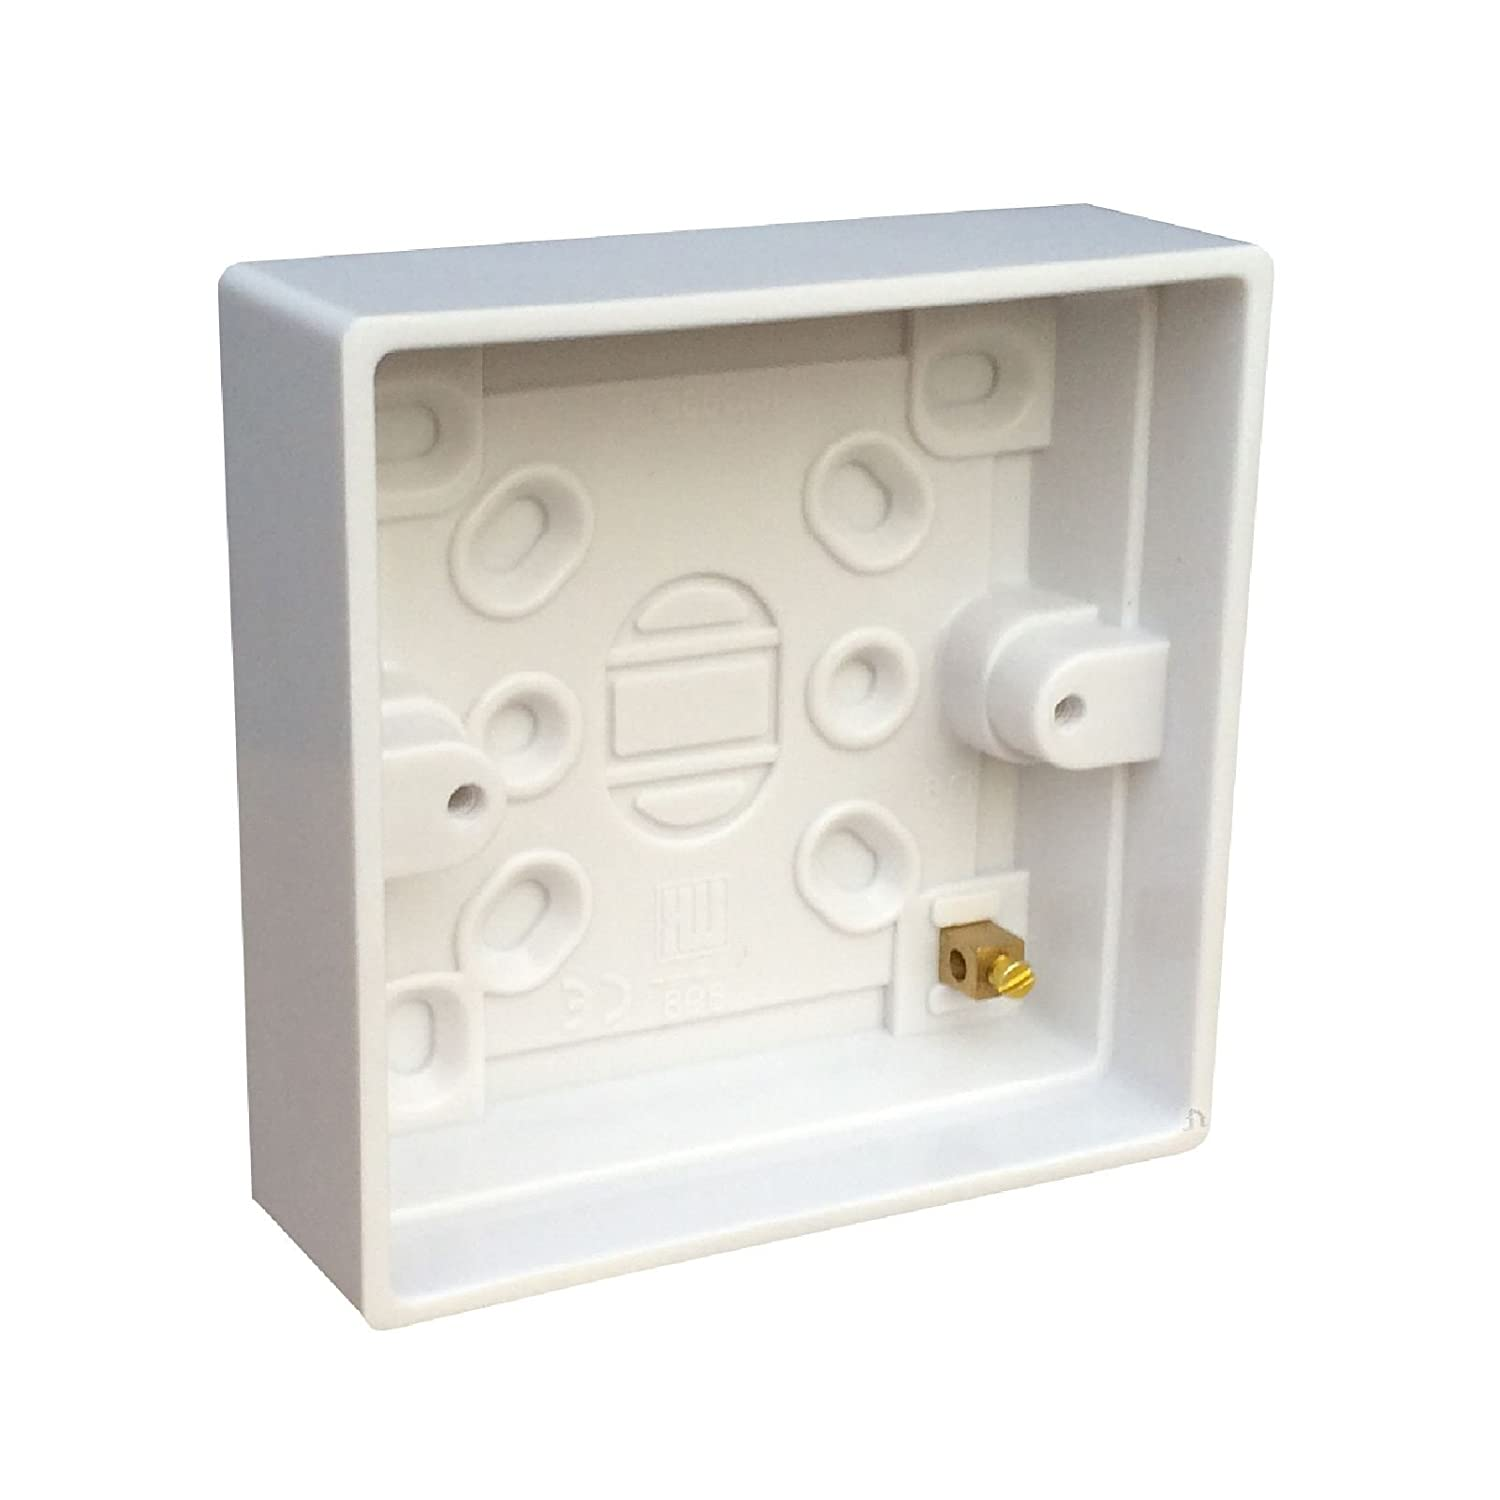 Surface Mounted Back Box 24mm Wall Pattress Single 1 Gang Electrical Socket Red and Grey